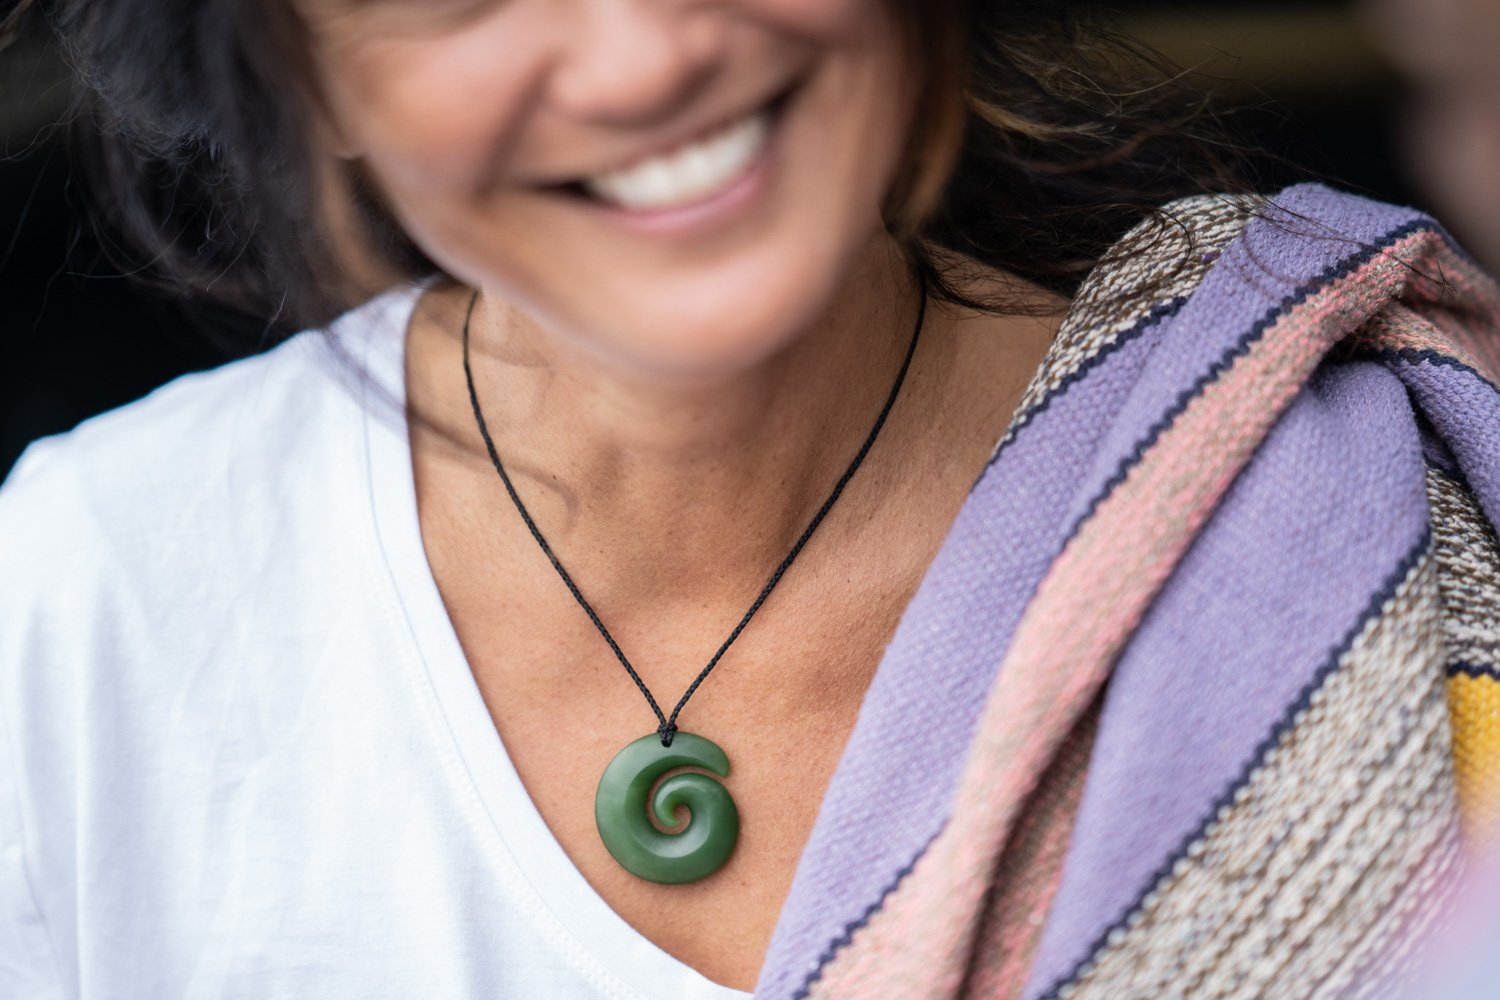 Jade and Greenstone (pounamu) necklaces and pendants